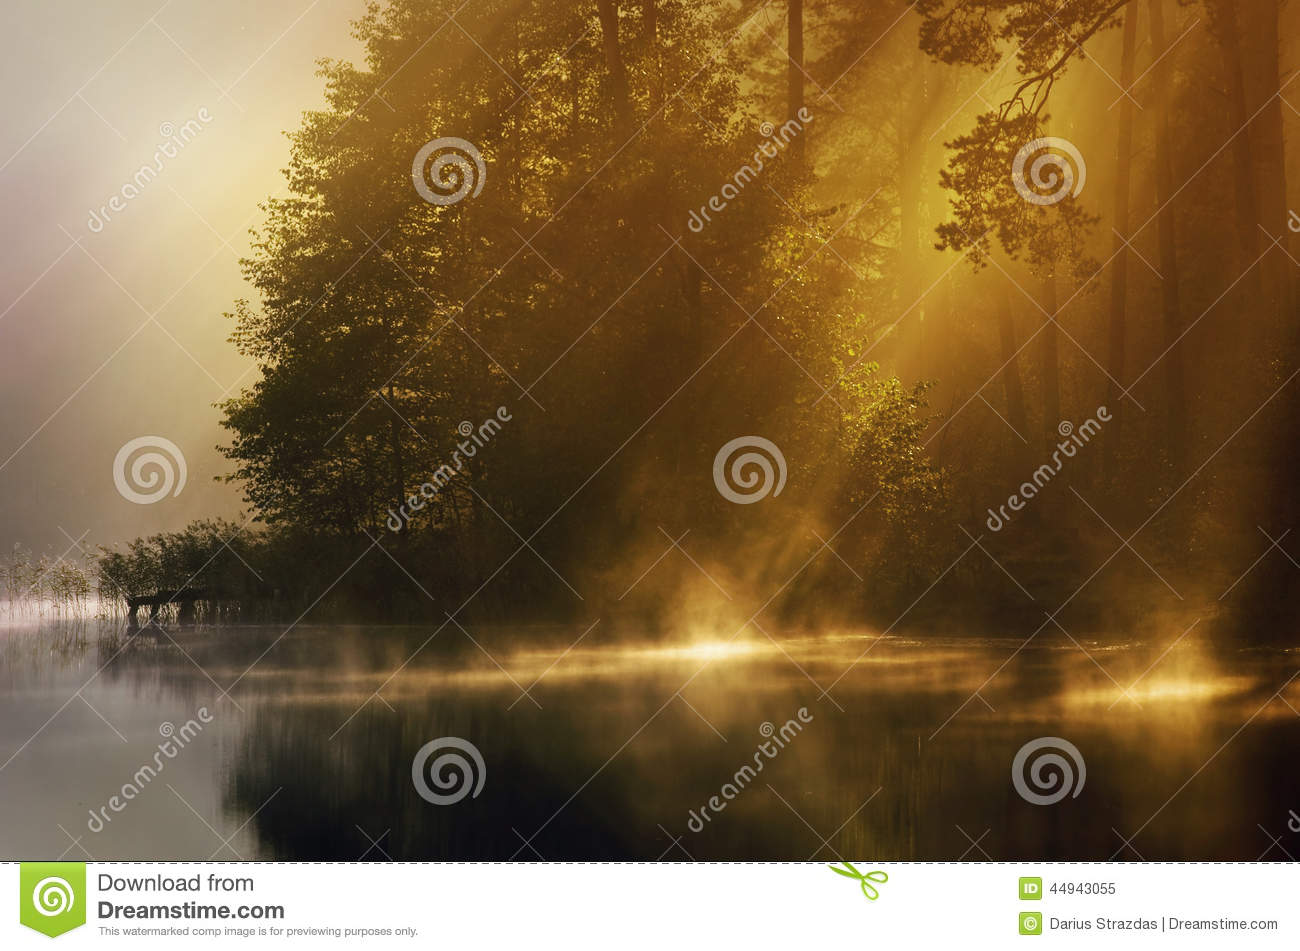 Mist of early morning